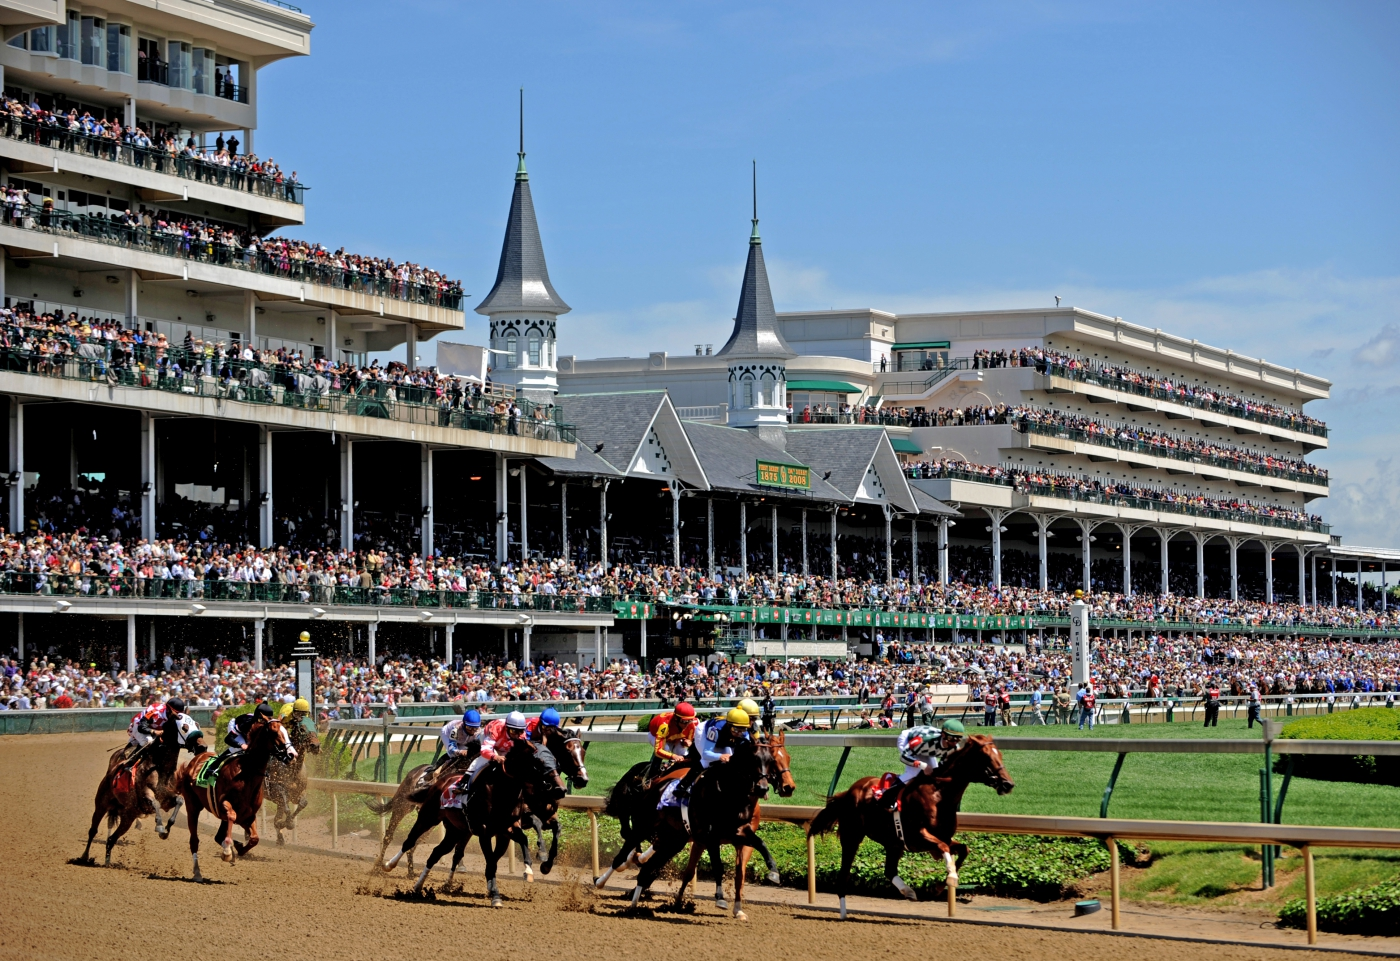 Kentucky Derby at Historic Churchill Downs - Louisville, Kentucky